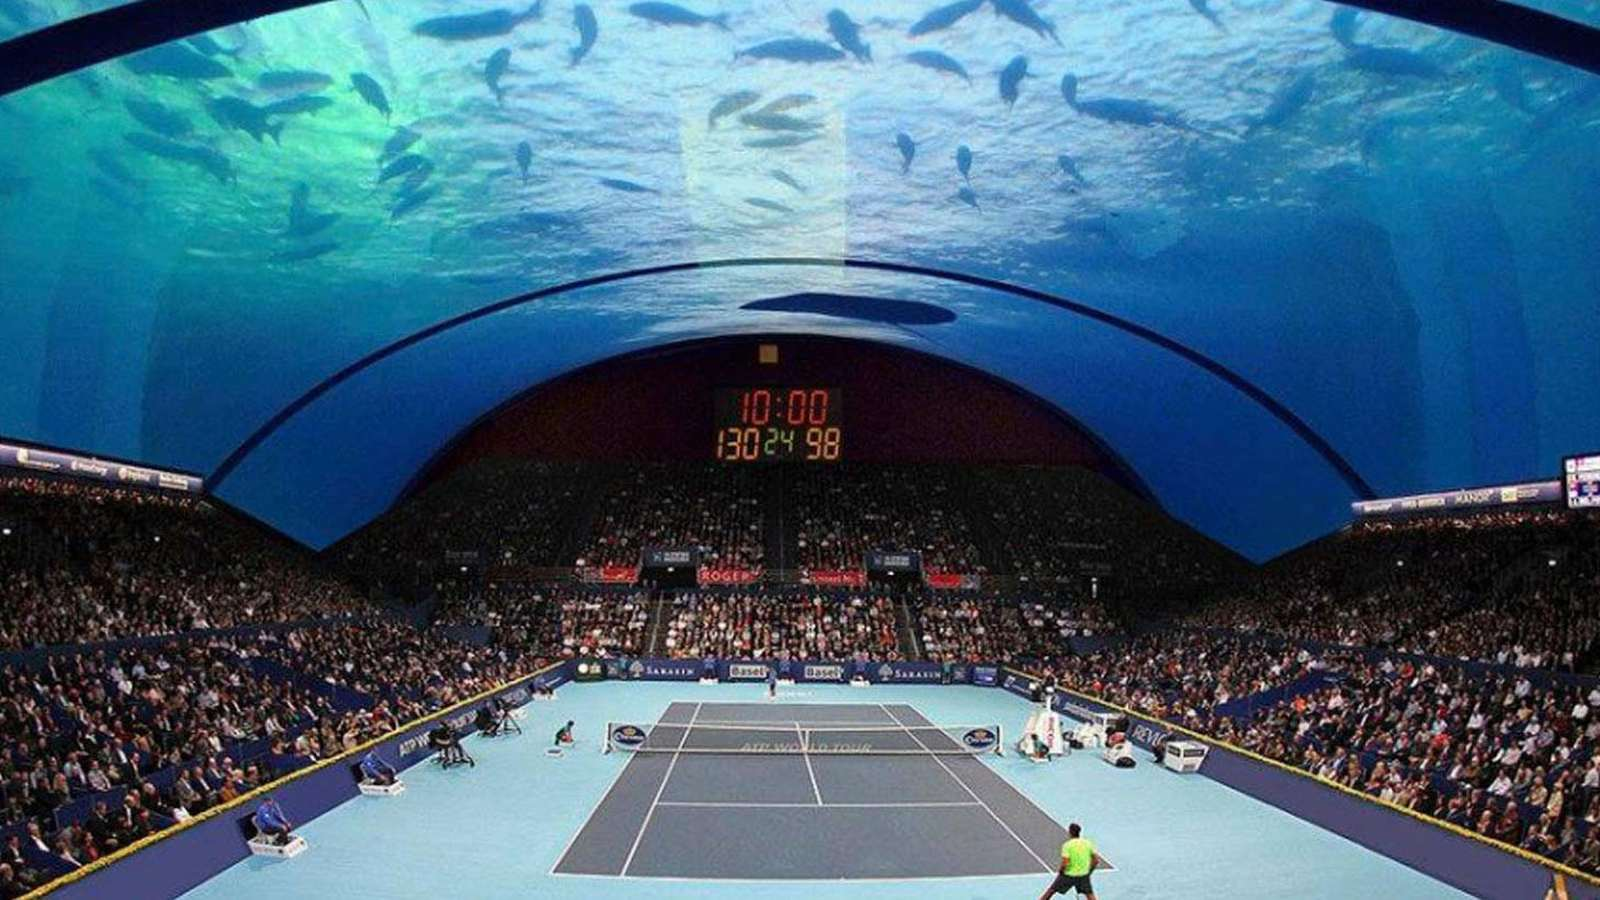 fuzzy secrects of the tennis ball spyn 8 amazing tennis courts from around the world